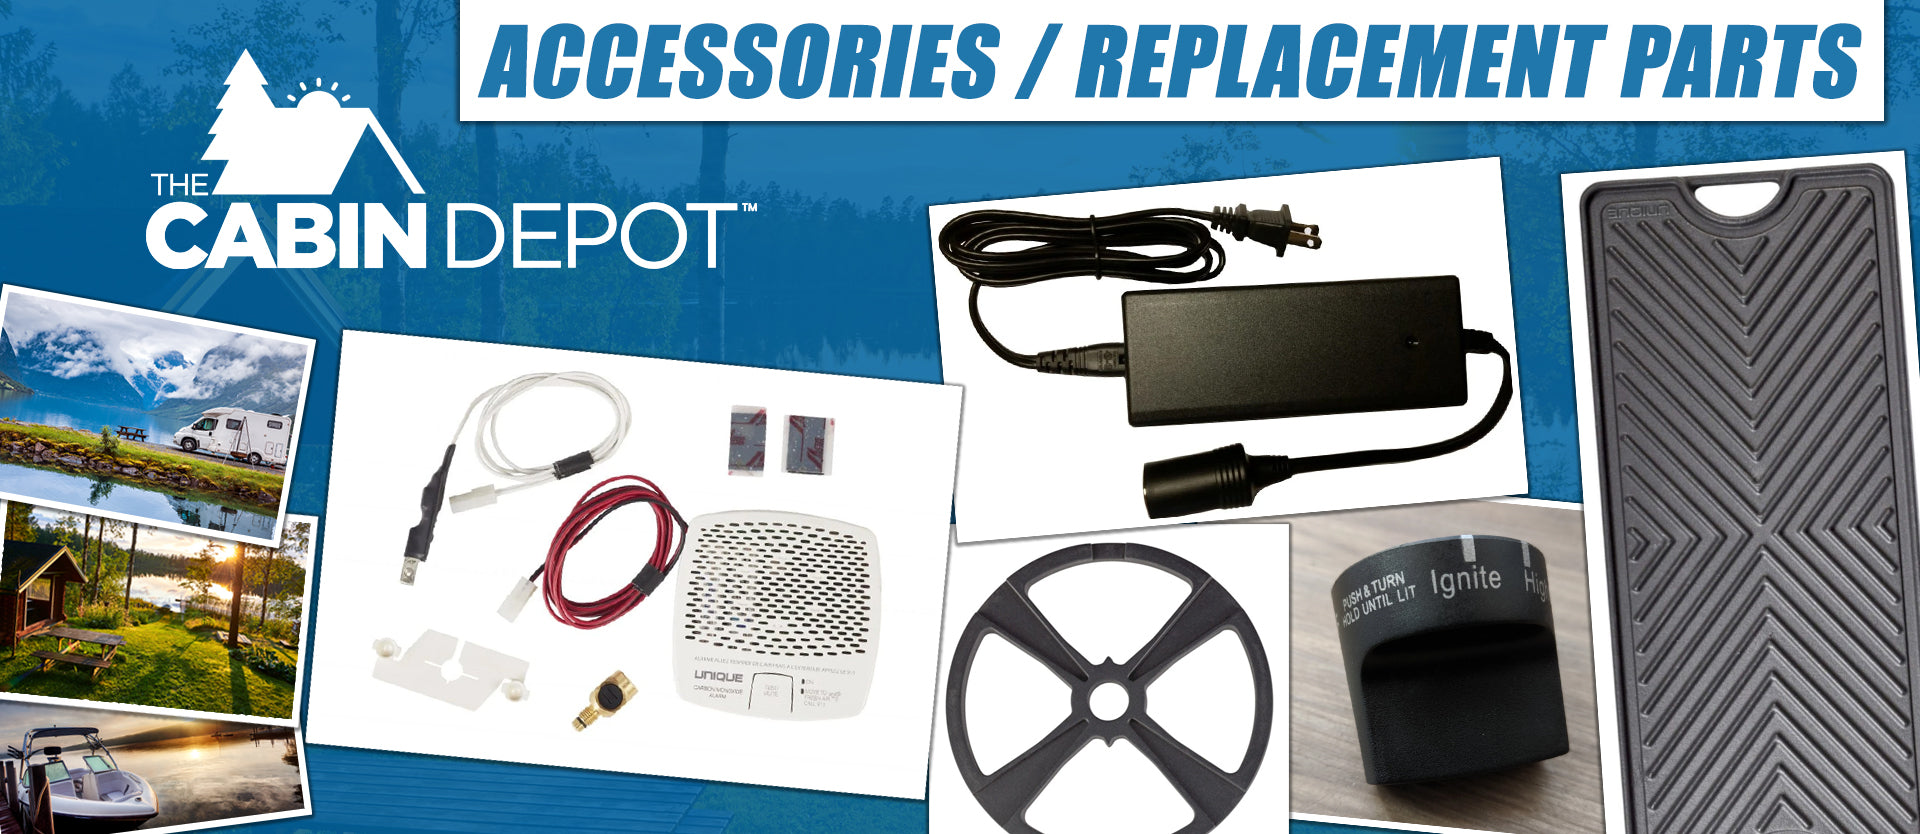 Unique Propane Range Replacement Parts Thermocouple CO carbon monoxide sensore stove range fridge propane Premier